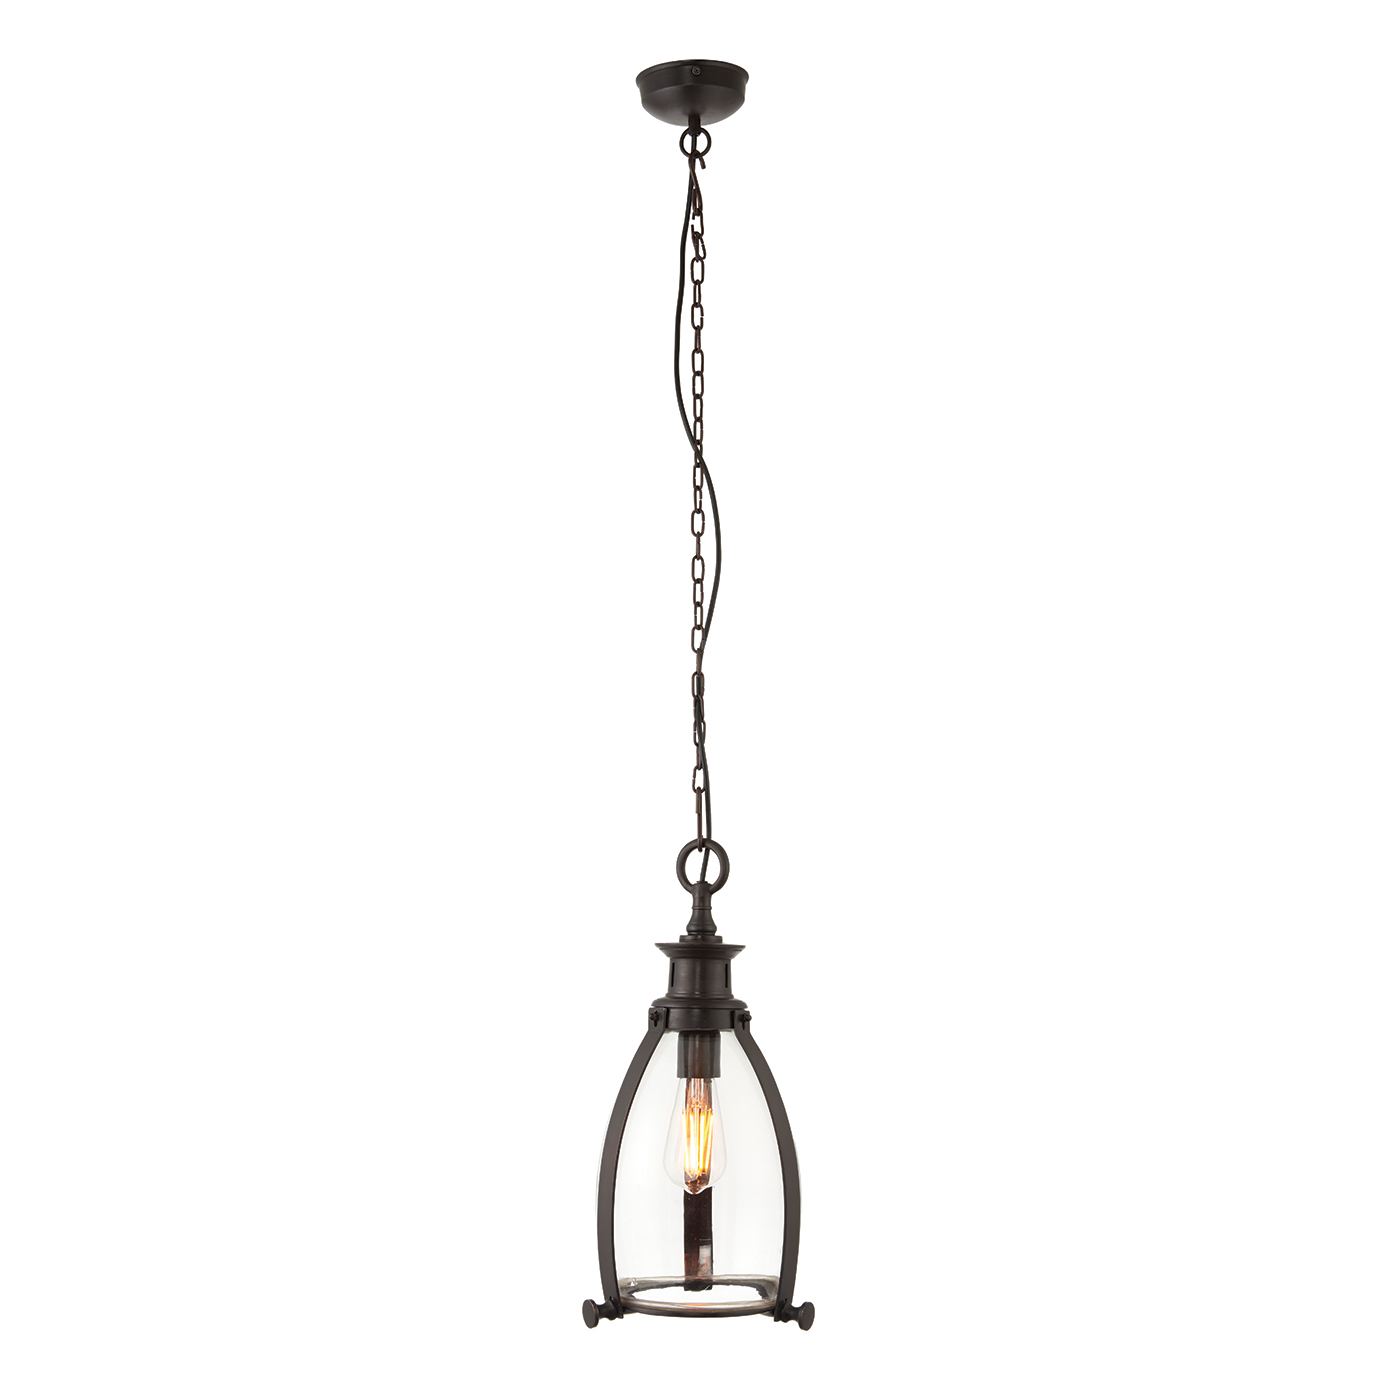 Endon Storni 210mm pendant 40W Aged bronze effect plate & clear glass